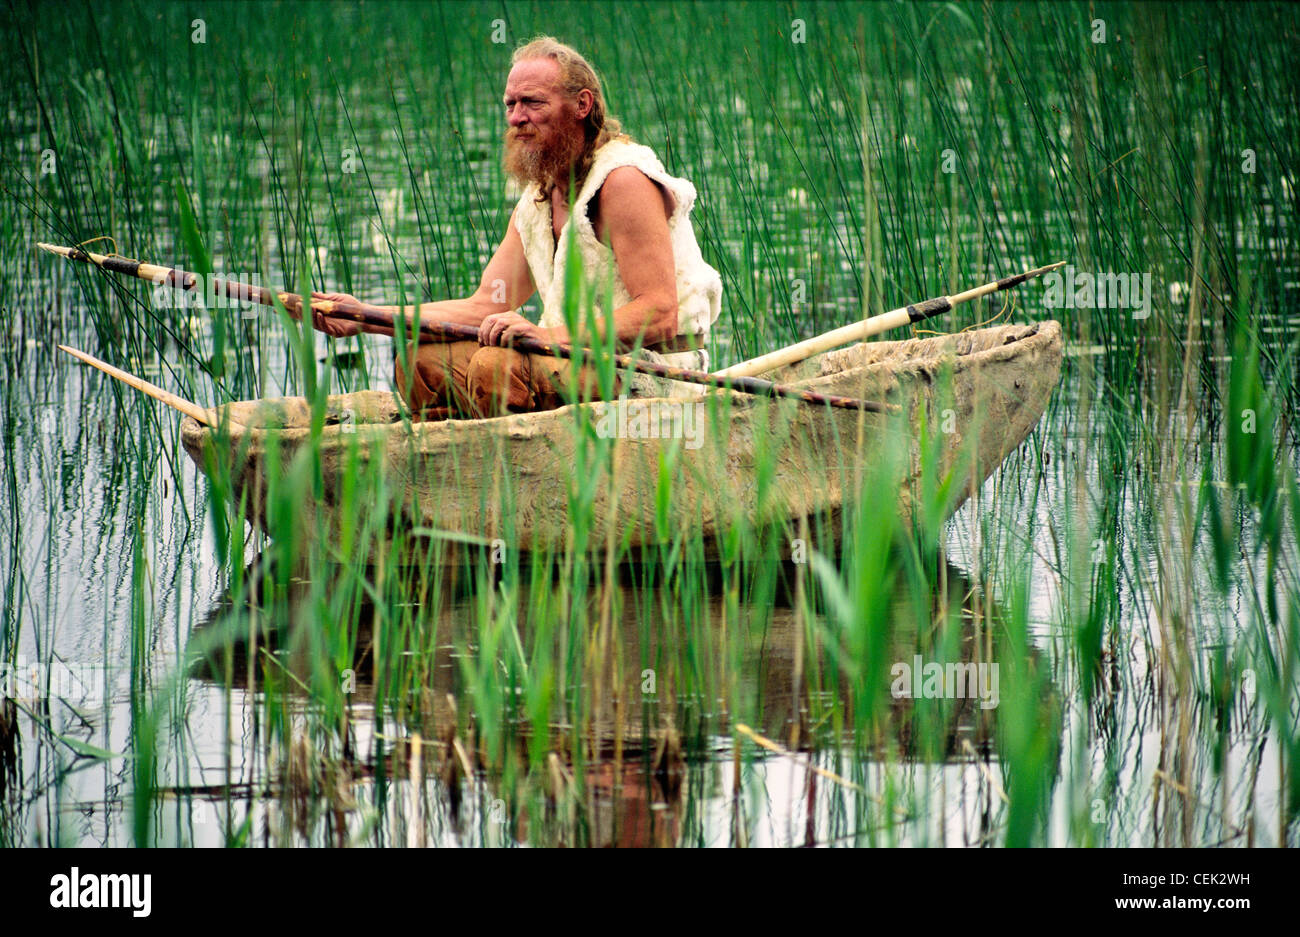 Neolithic re-enactment. Stone Age man holding fish spear in animal hide coracle boat on reed shore lake. Kilmartin, - Stock Image